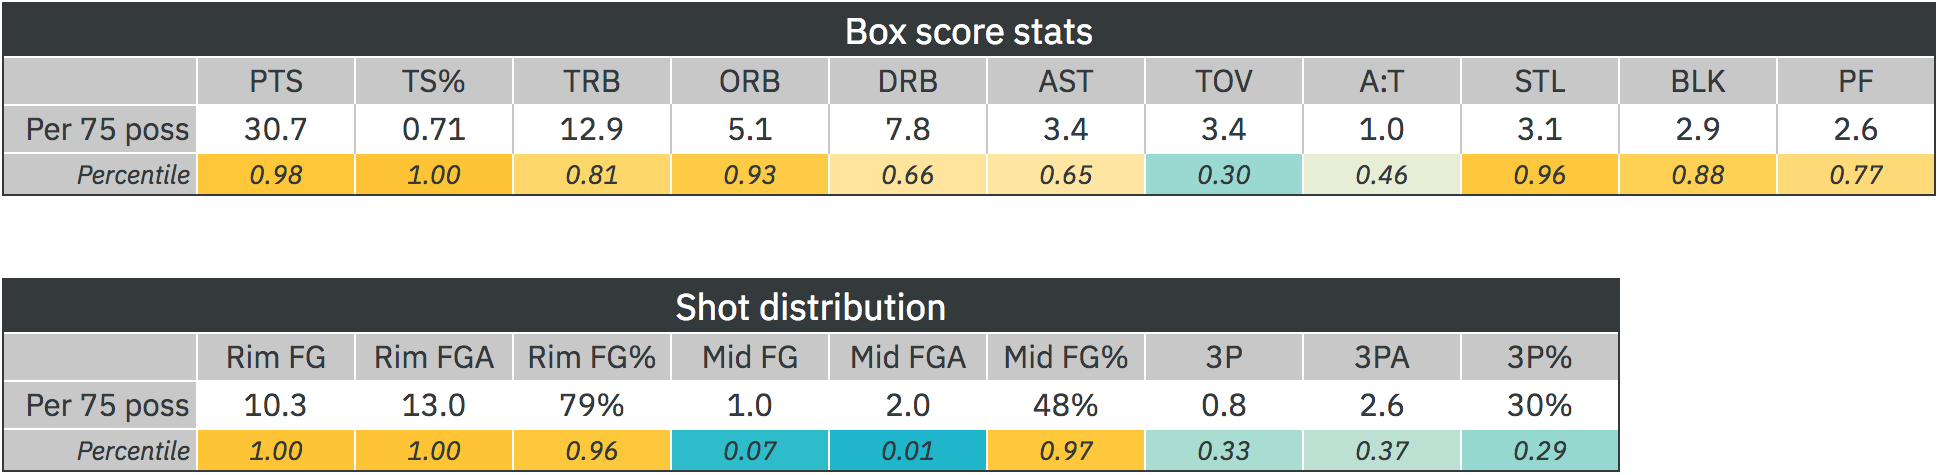 zion-stats.png